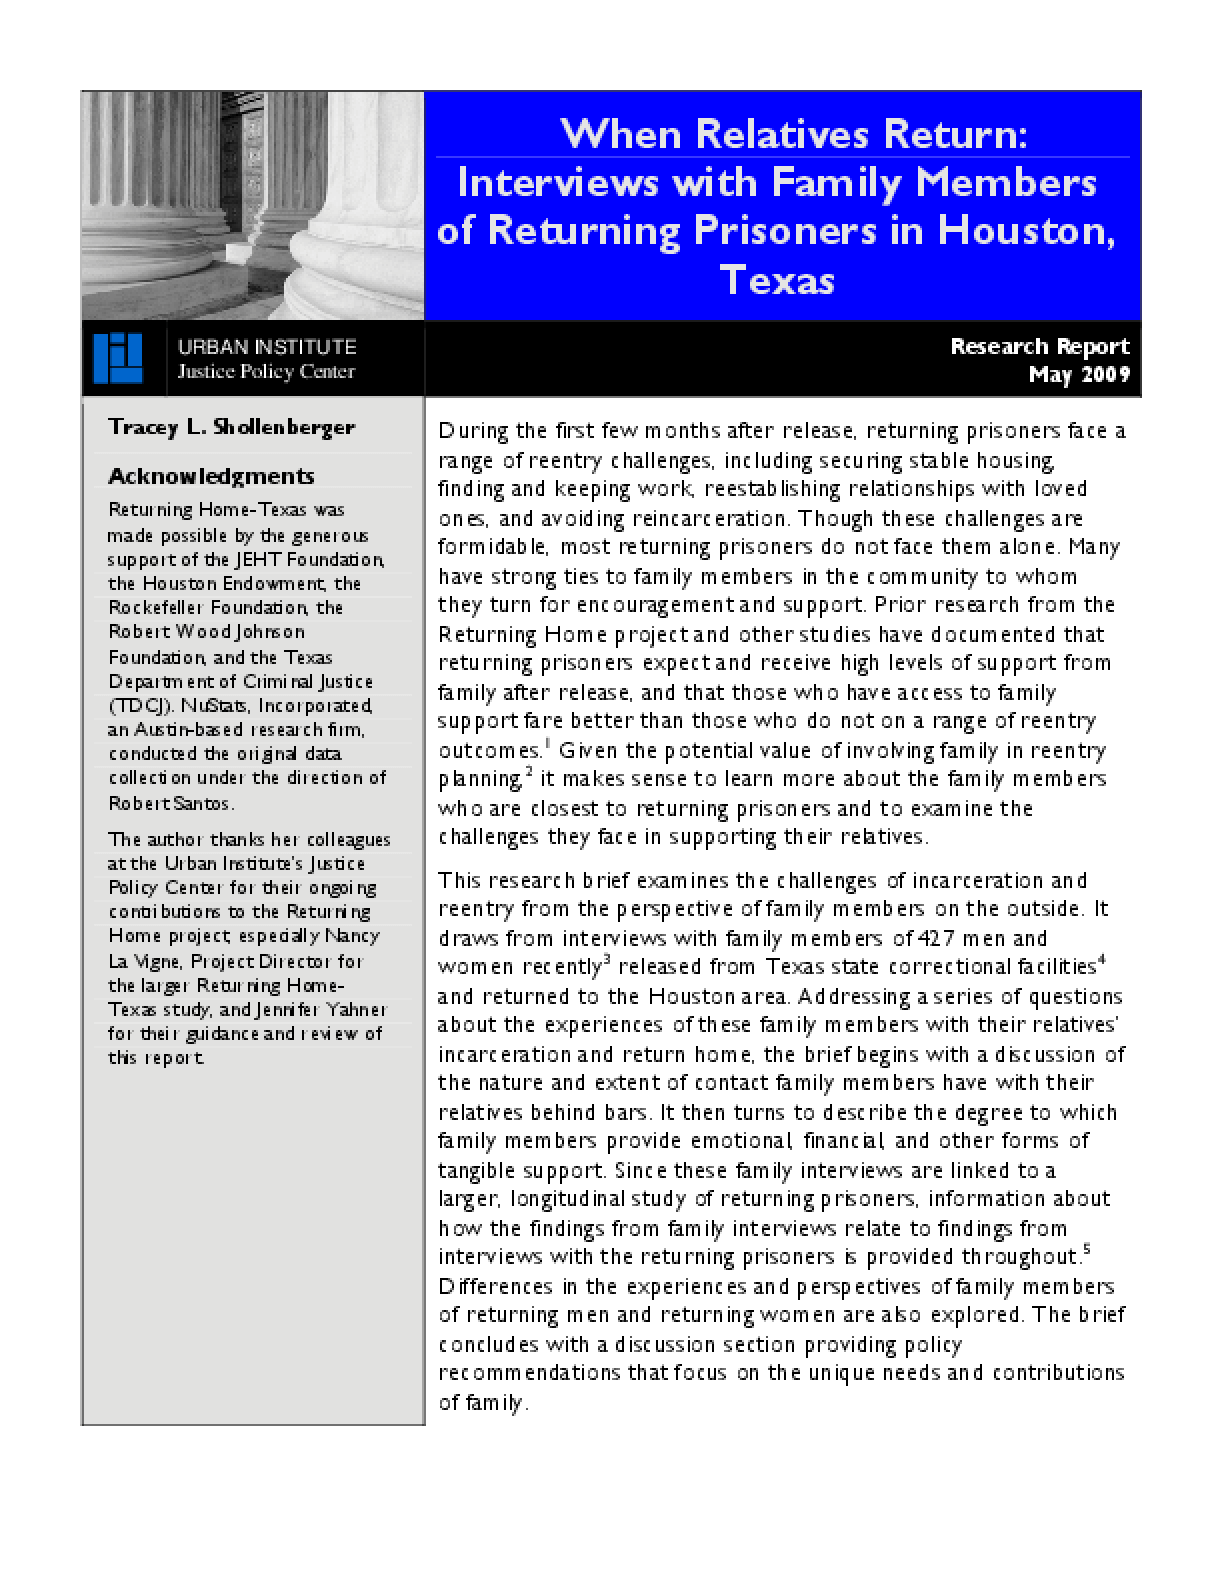 When Relatives Return: Interviews With Family Members of Returning Prisoners in Houston, Texas